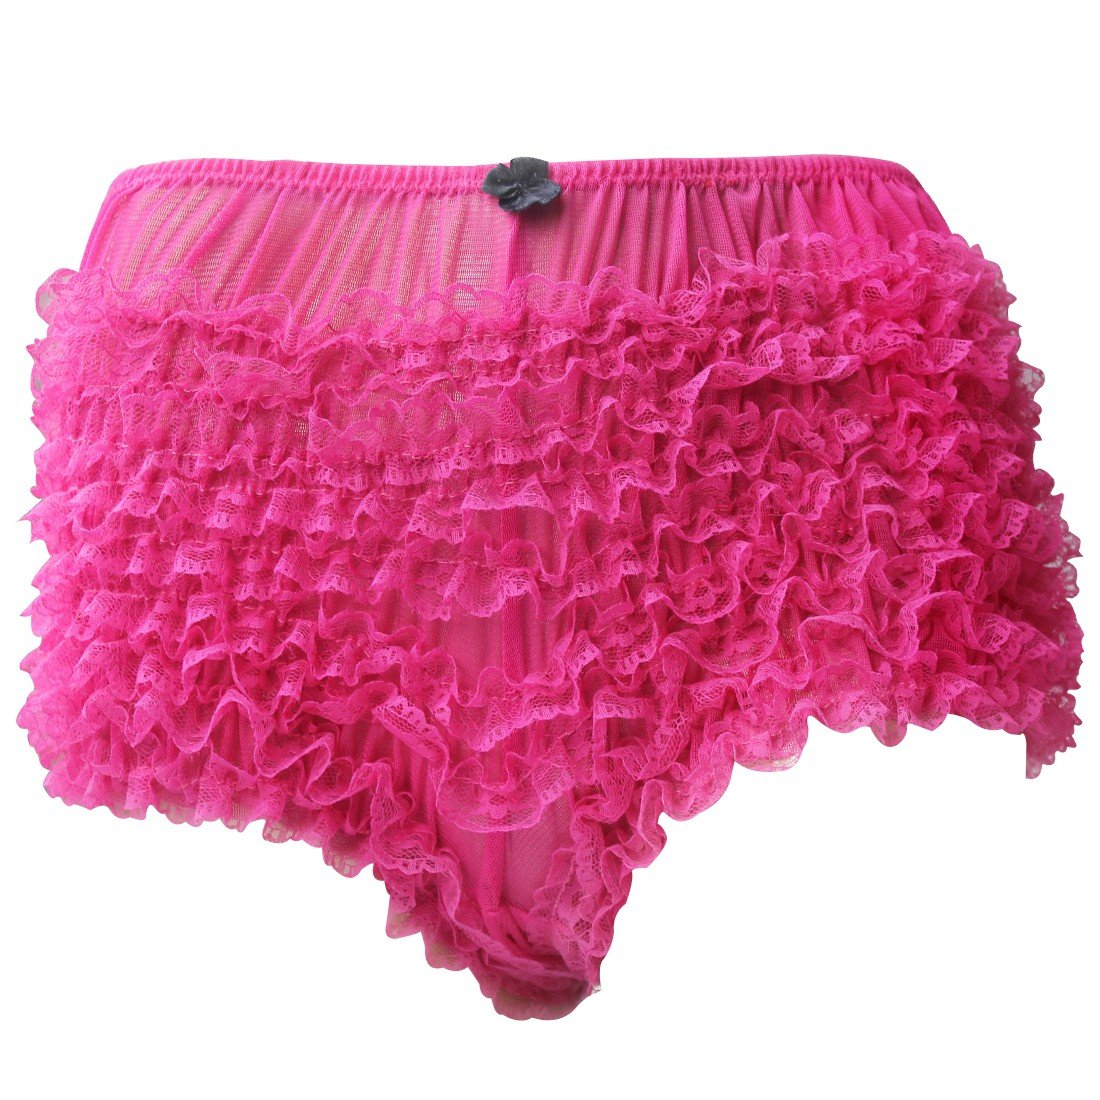 YOOJIA Womens Ruffled Frilly Lace Trim Mini Bowknot Boxer Briefs Underwear Bloomers Underpants Knickers Shorts